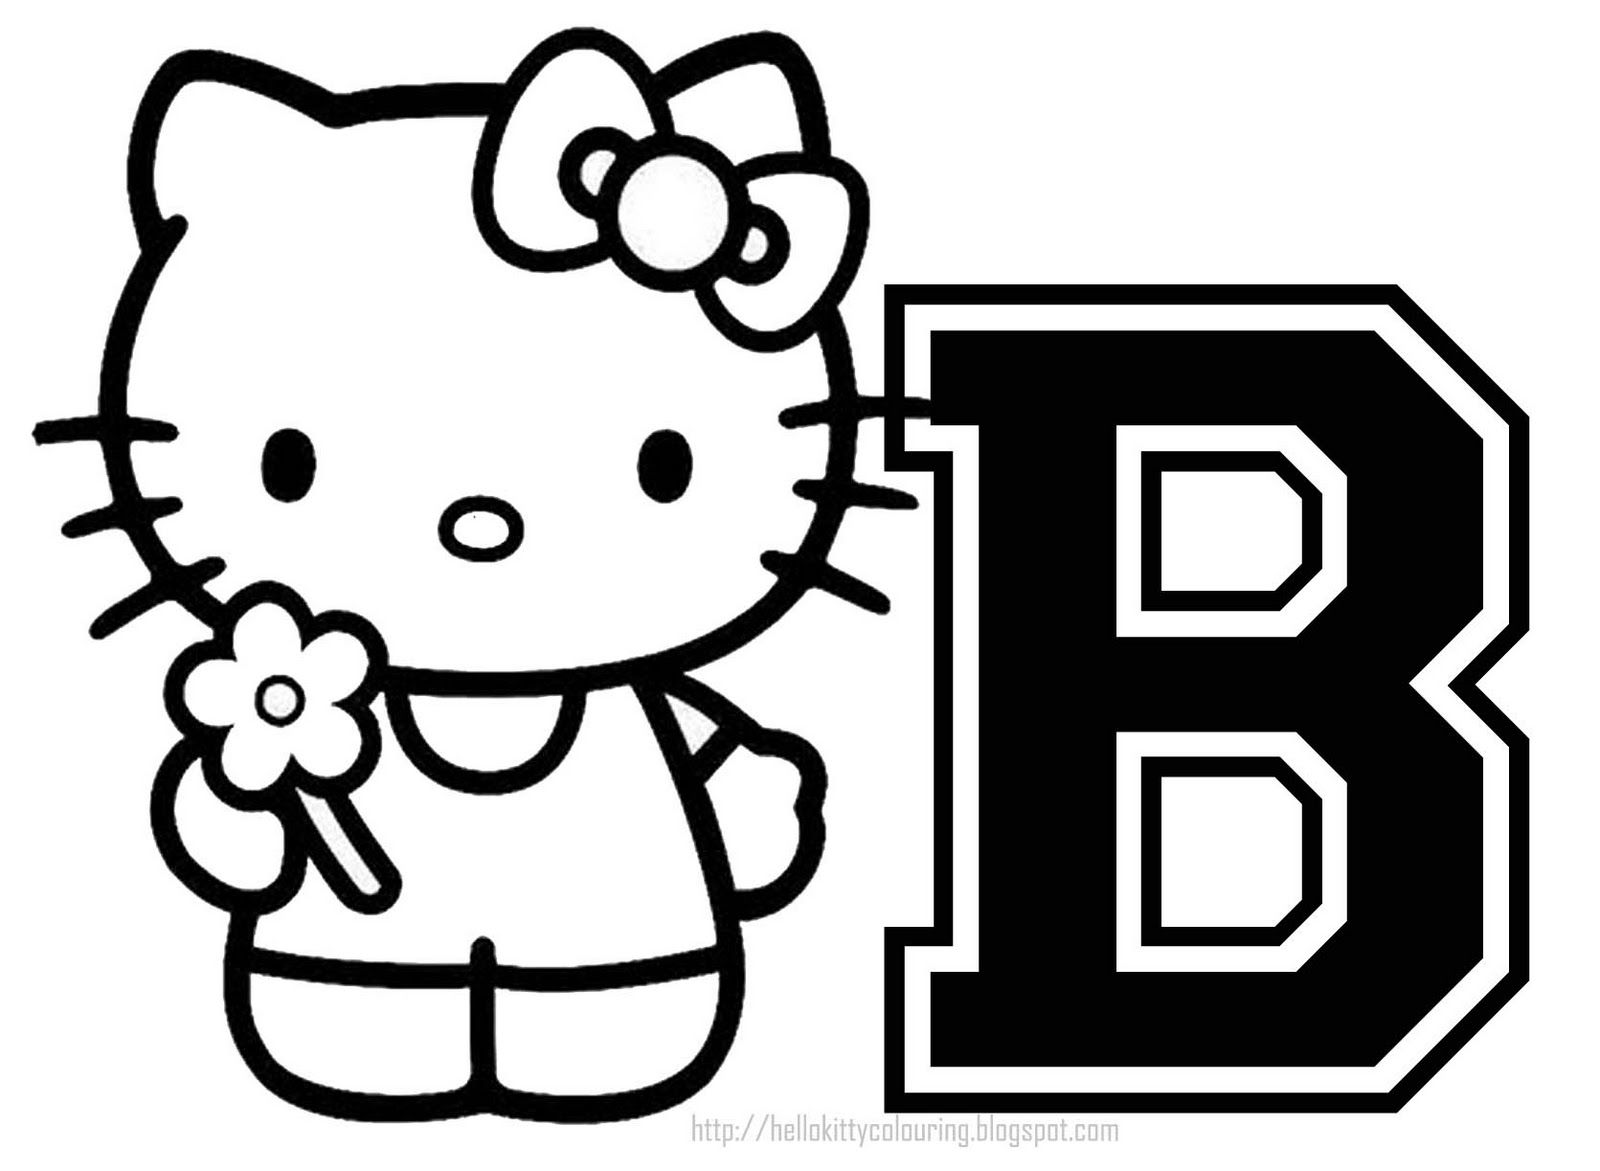 HELLO KITTY COLORING PAGES  Hello kitty colouring pages, Hello